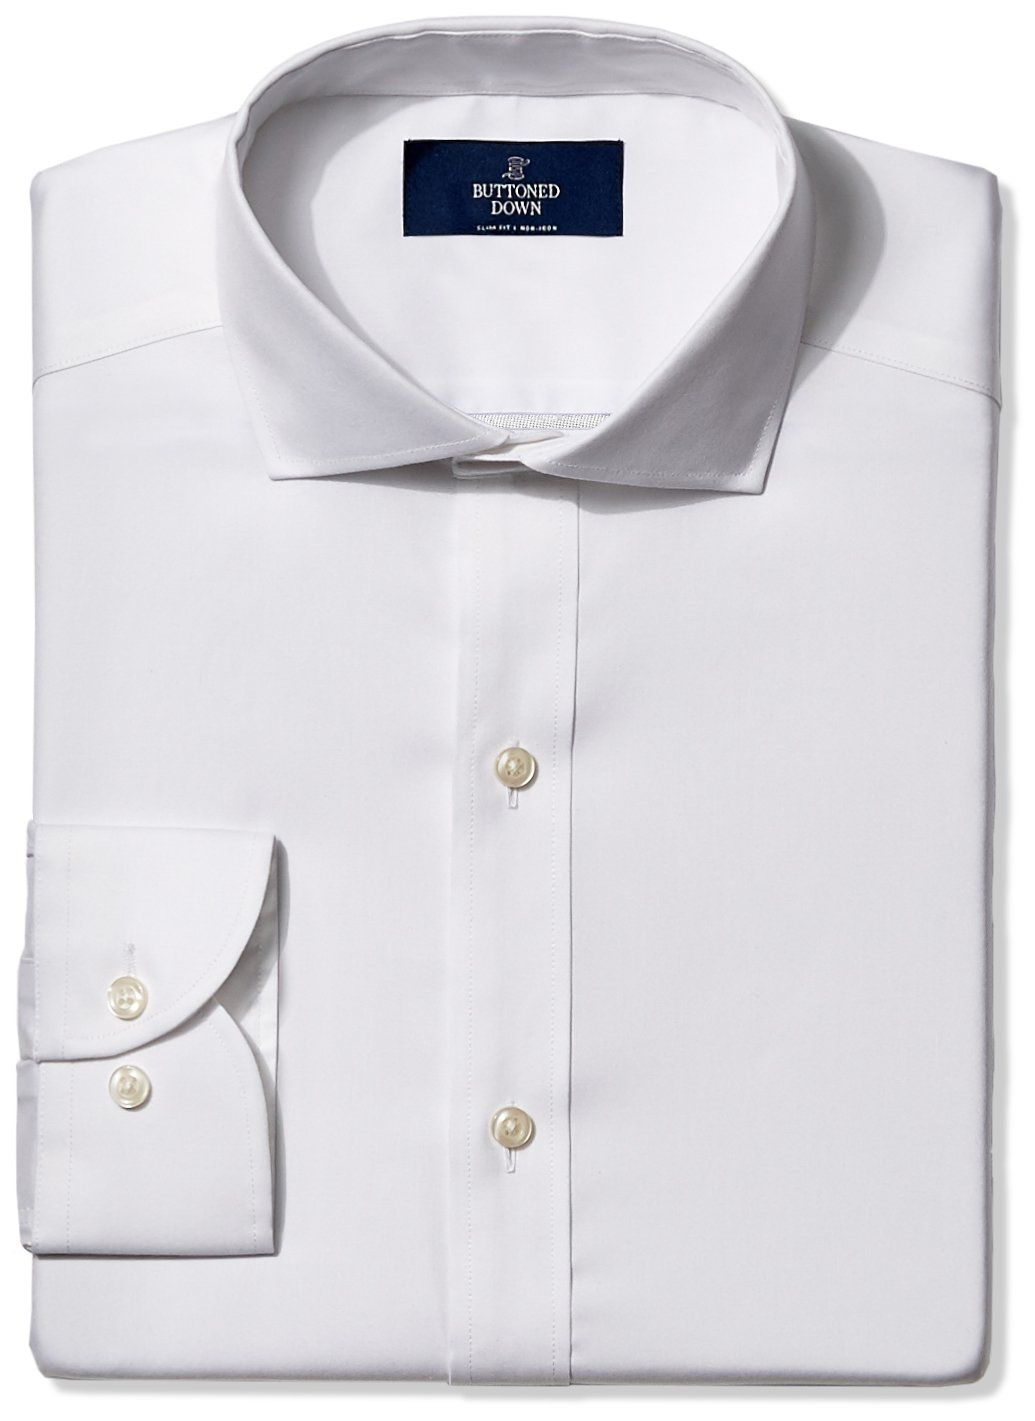 Buttoned Down Men's Slim Fit Cutaway-Collar Non-Iron Dress Shirt (No Pocket), White, 17.5'' Neck 36'' Sleeve